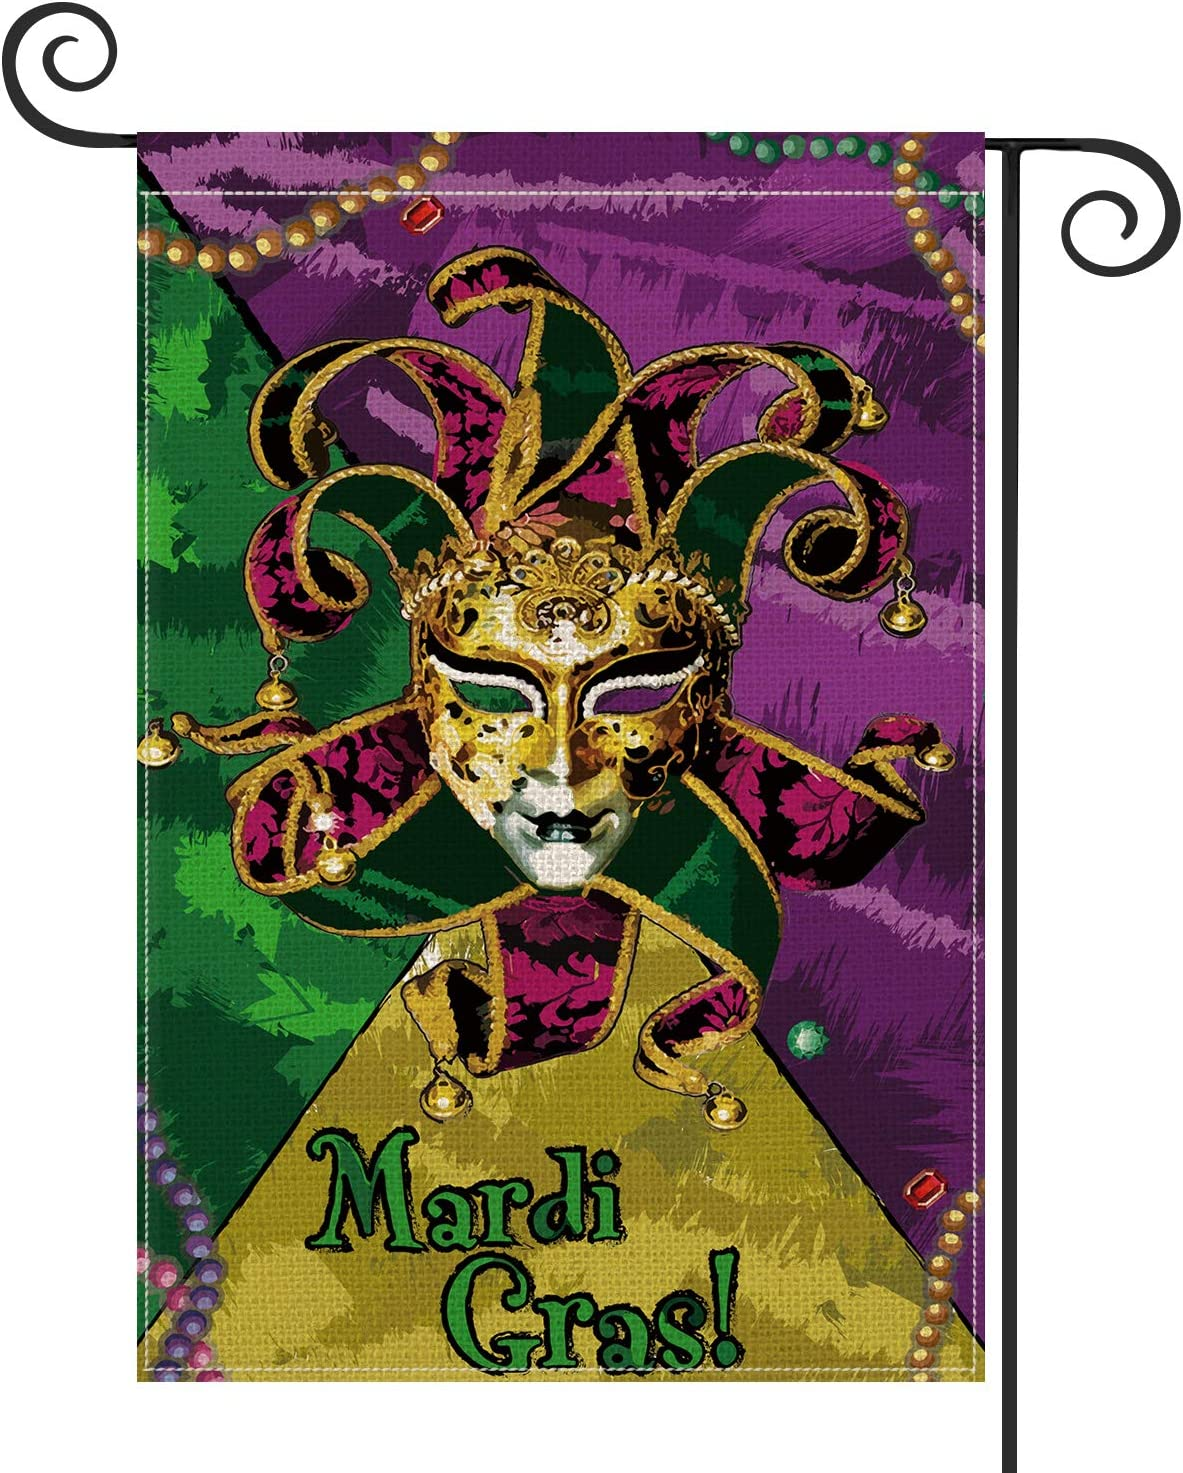 AVOIN Mardi Gras Harlequin Mask Fleur De Lis Double Sided Garden Flag, 12.5 x 18 Inch Spring Decorative House Flag Outdoor Frontdoor Yard Party